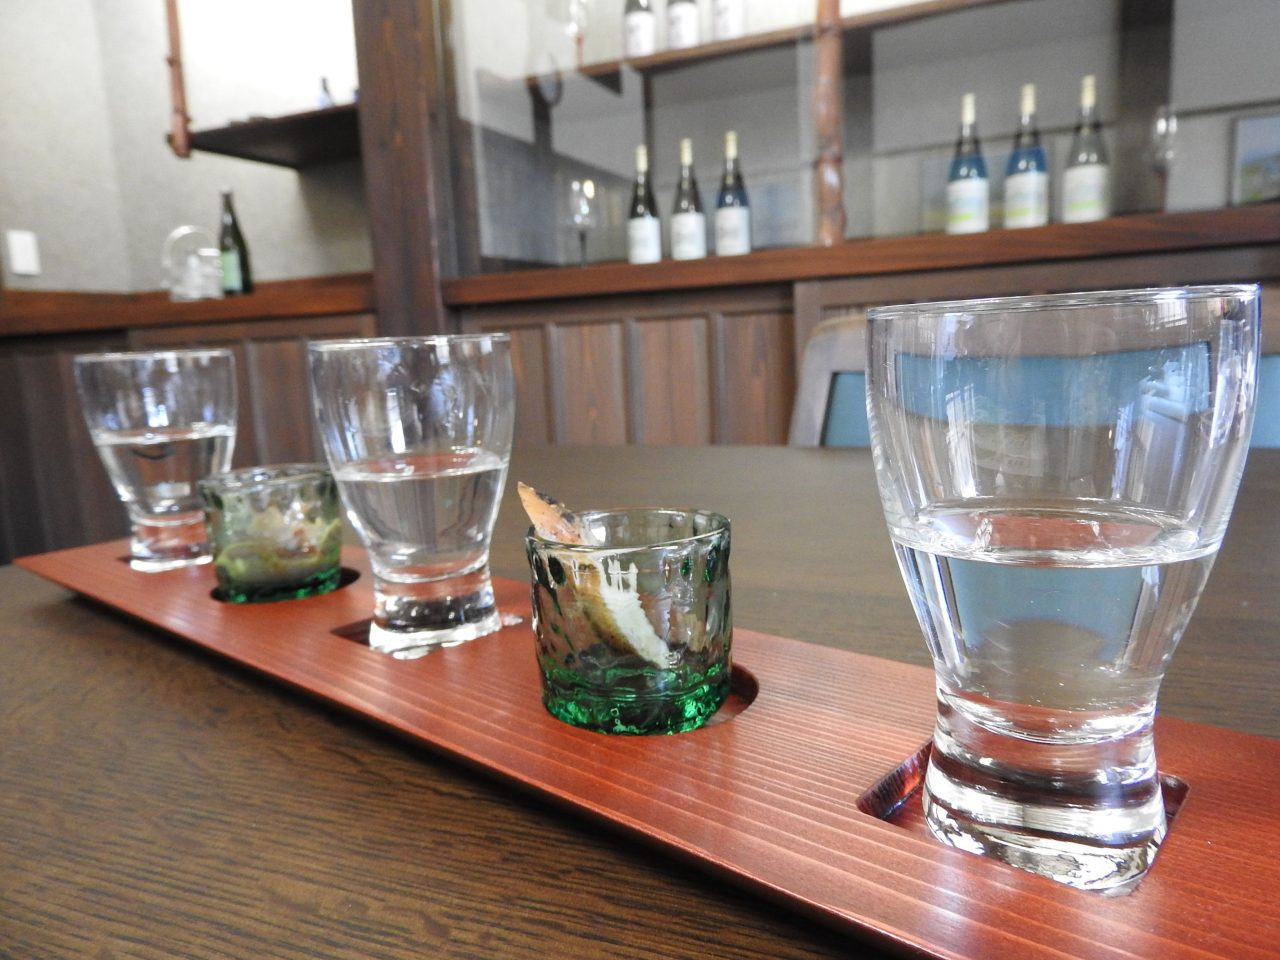 Learn more about the world of sake through our tasting programs